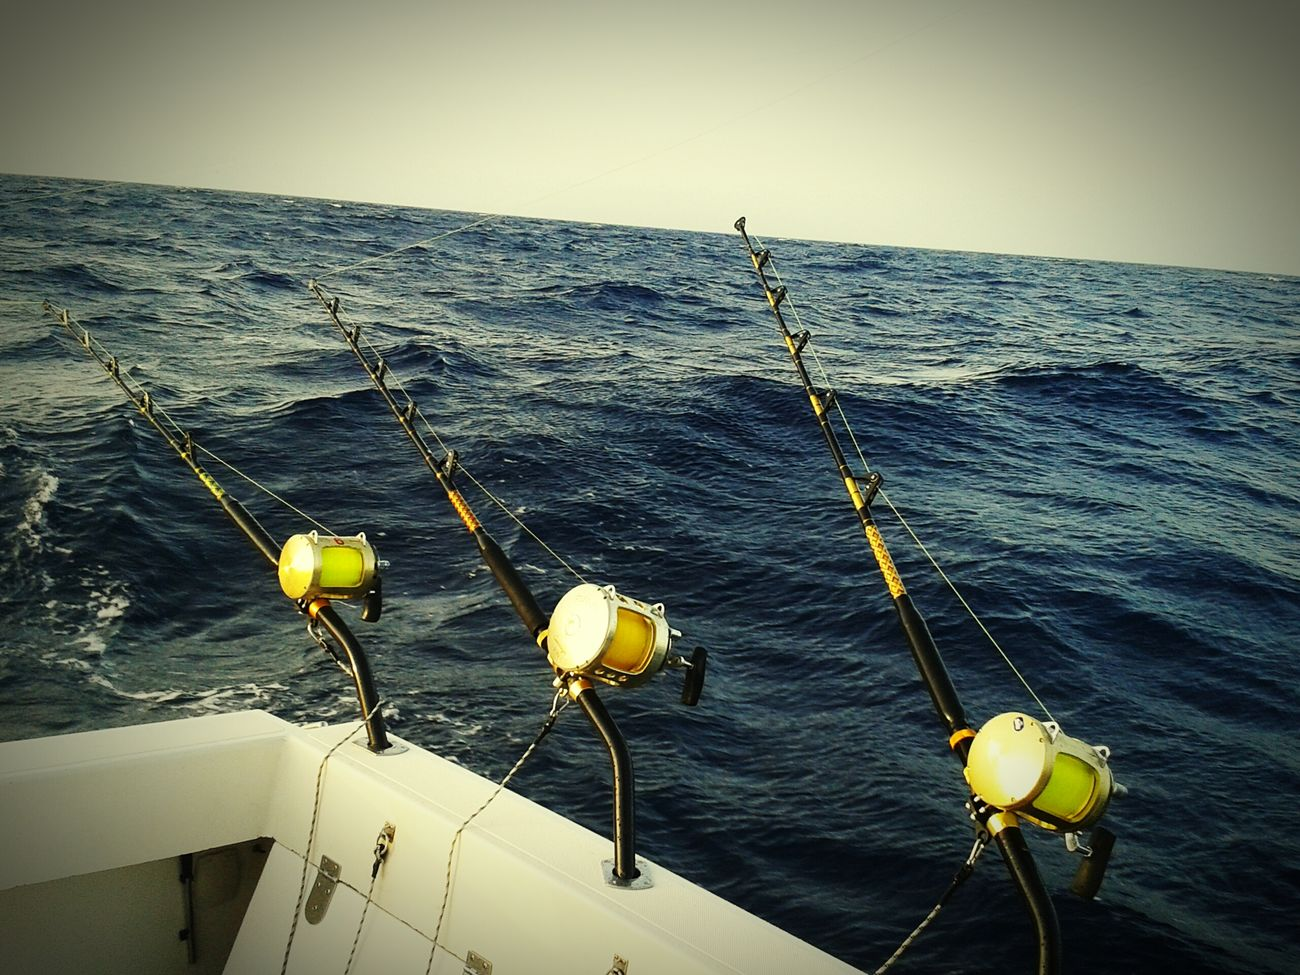 Sea Fishing of the shore of Caleta De Fuste for Marlin Yellowfin Tuna and Wahoo Wahoo